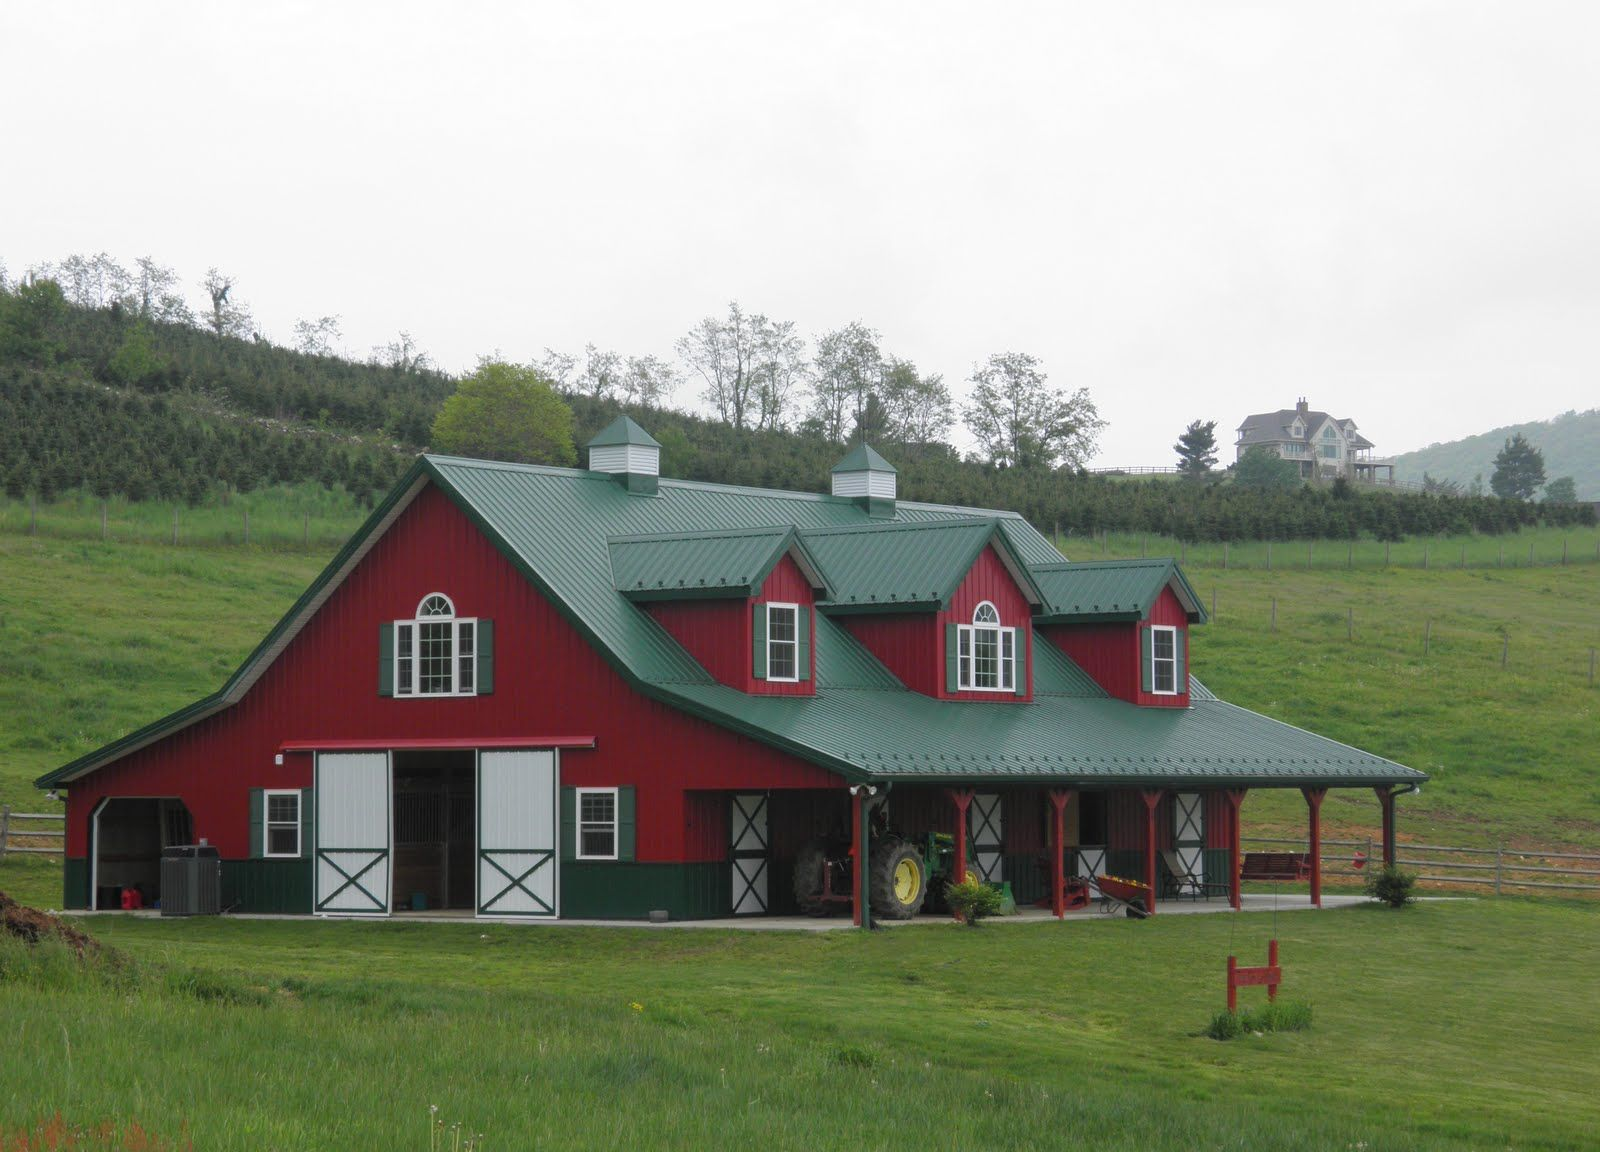 House that looks like red barn images at home in the for Barn construction designs